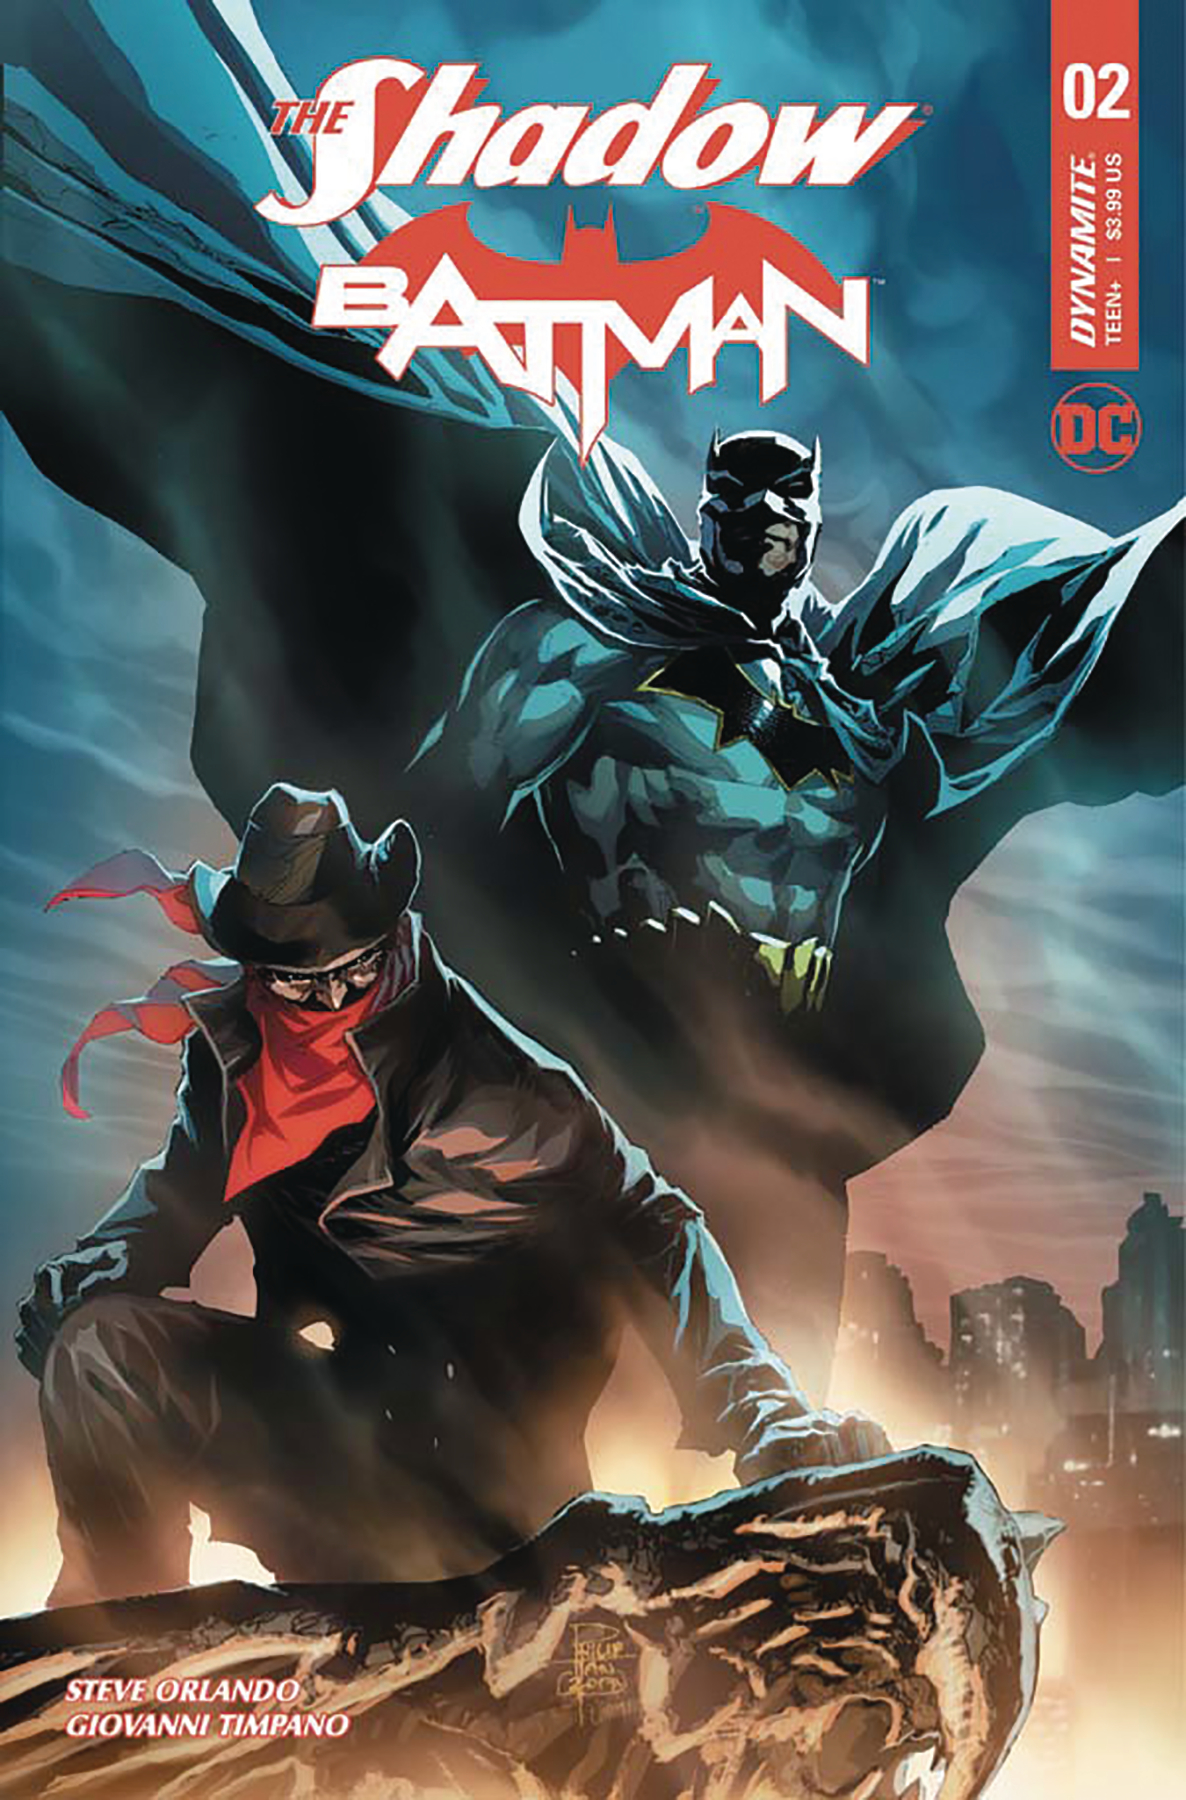 SHADOW BATMAN #2 (OF 6) CVR D TAN